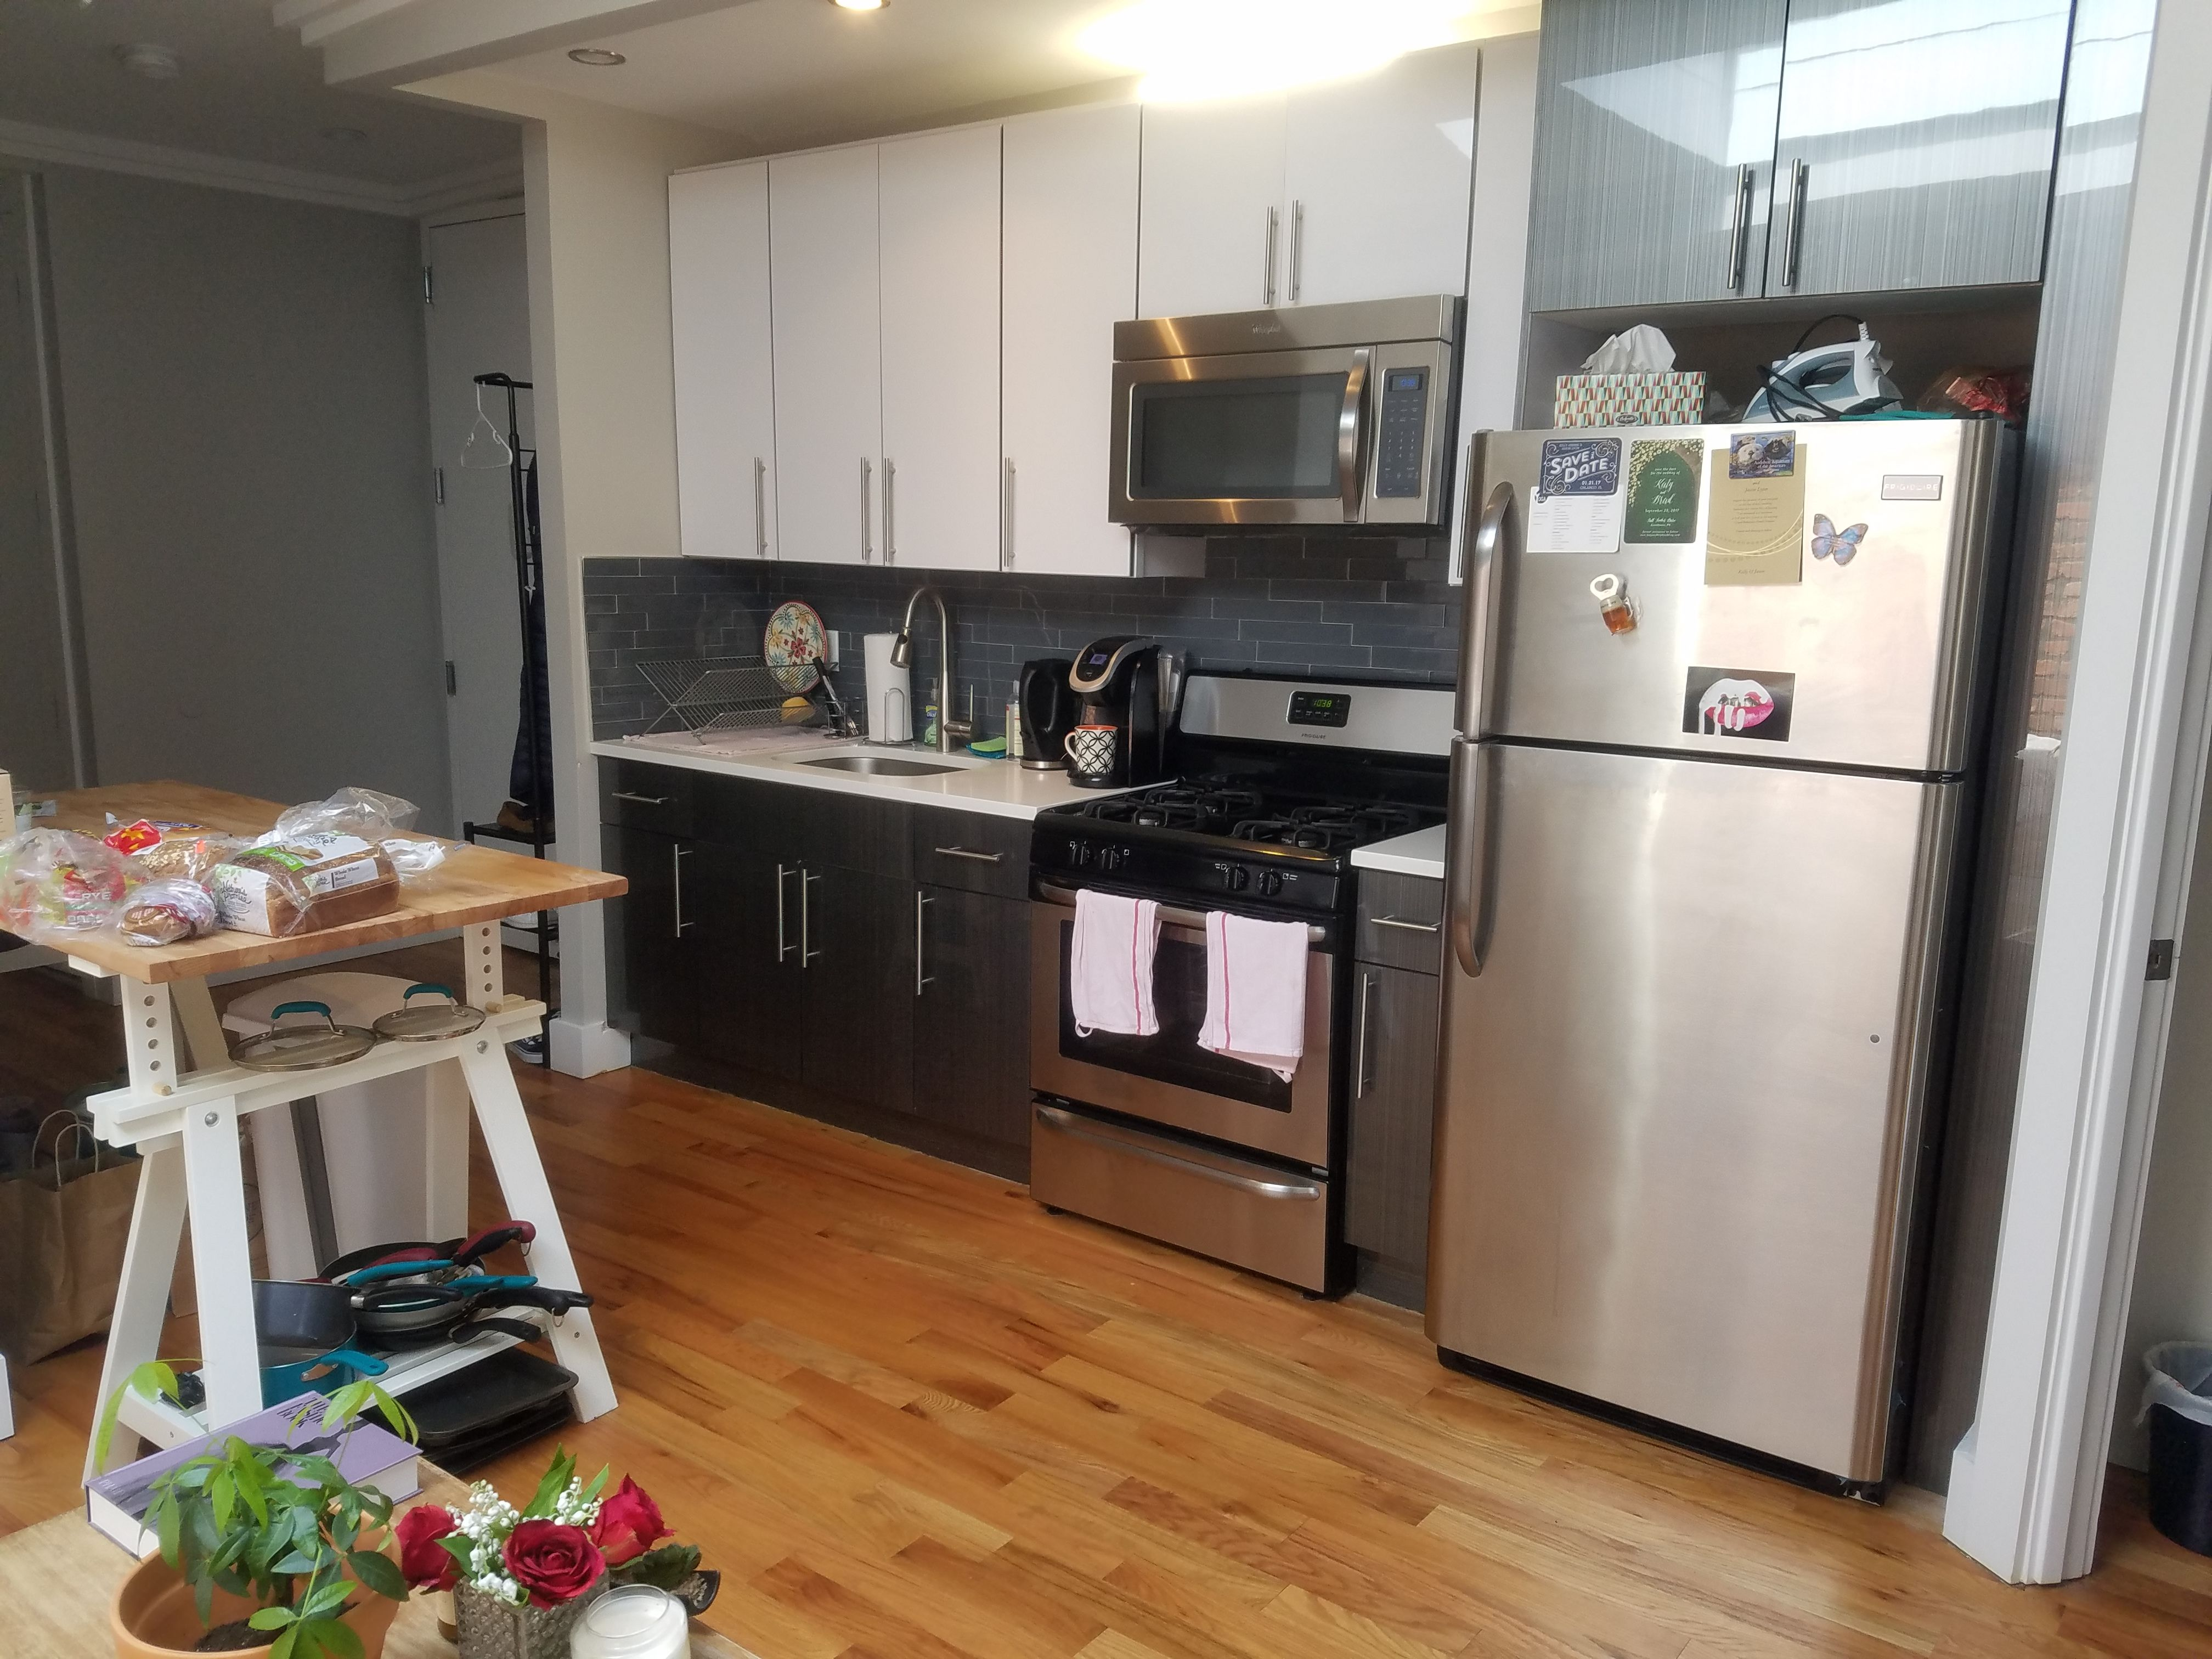 Rooms For Rent August 1st In Crown Heights! Photo 0 - BROWNSTONER-LISTING-d402577d74356a417bcc920c8a408560